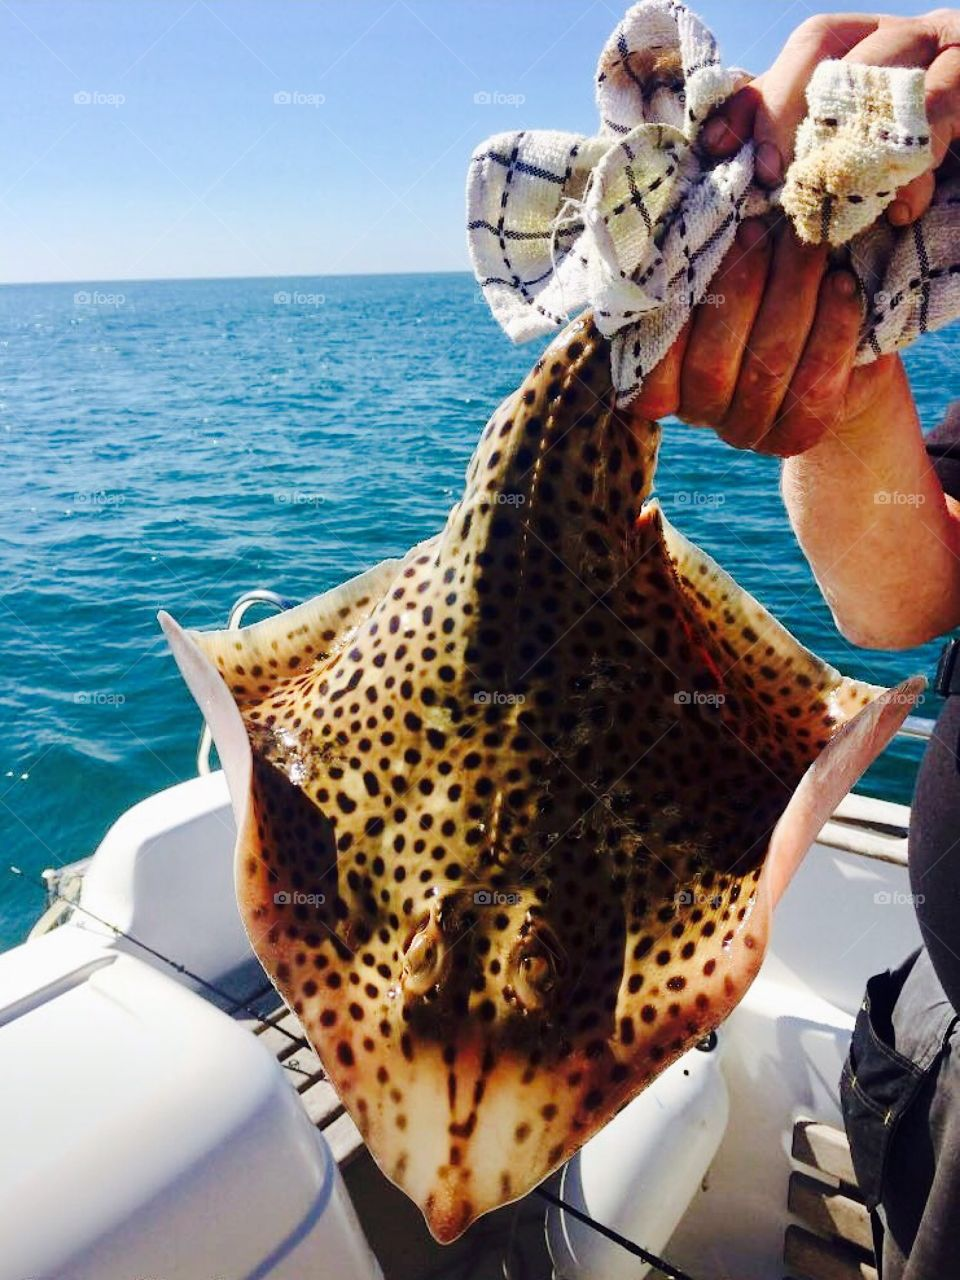 Freshly caught vibrant skate deep sea fishing in Weymouth southern England